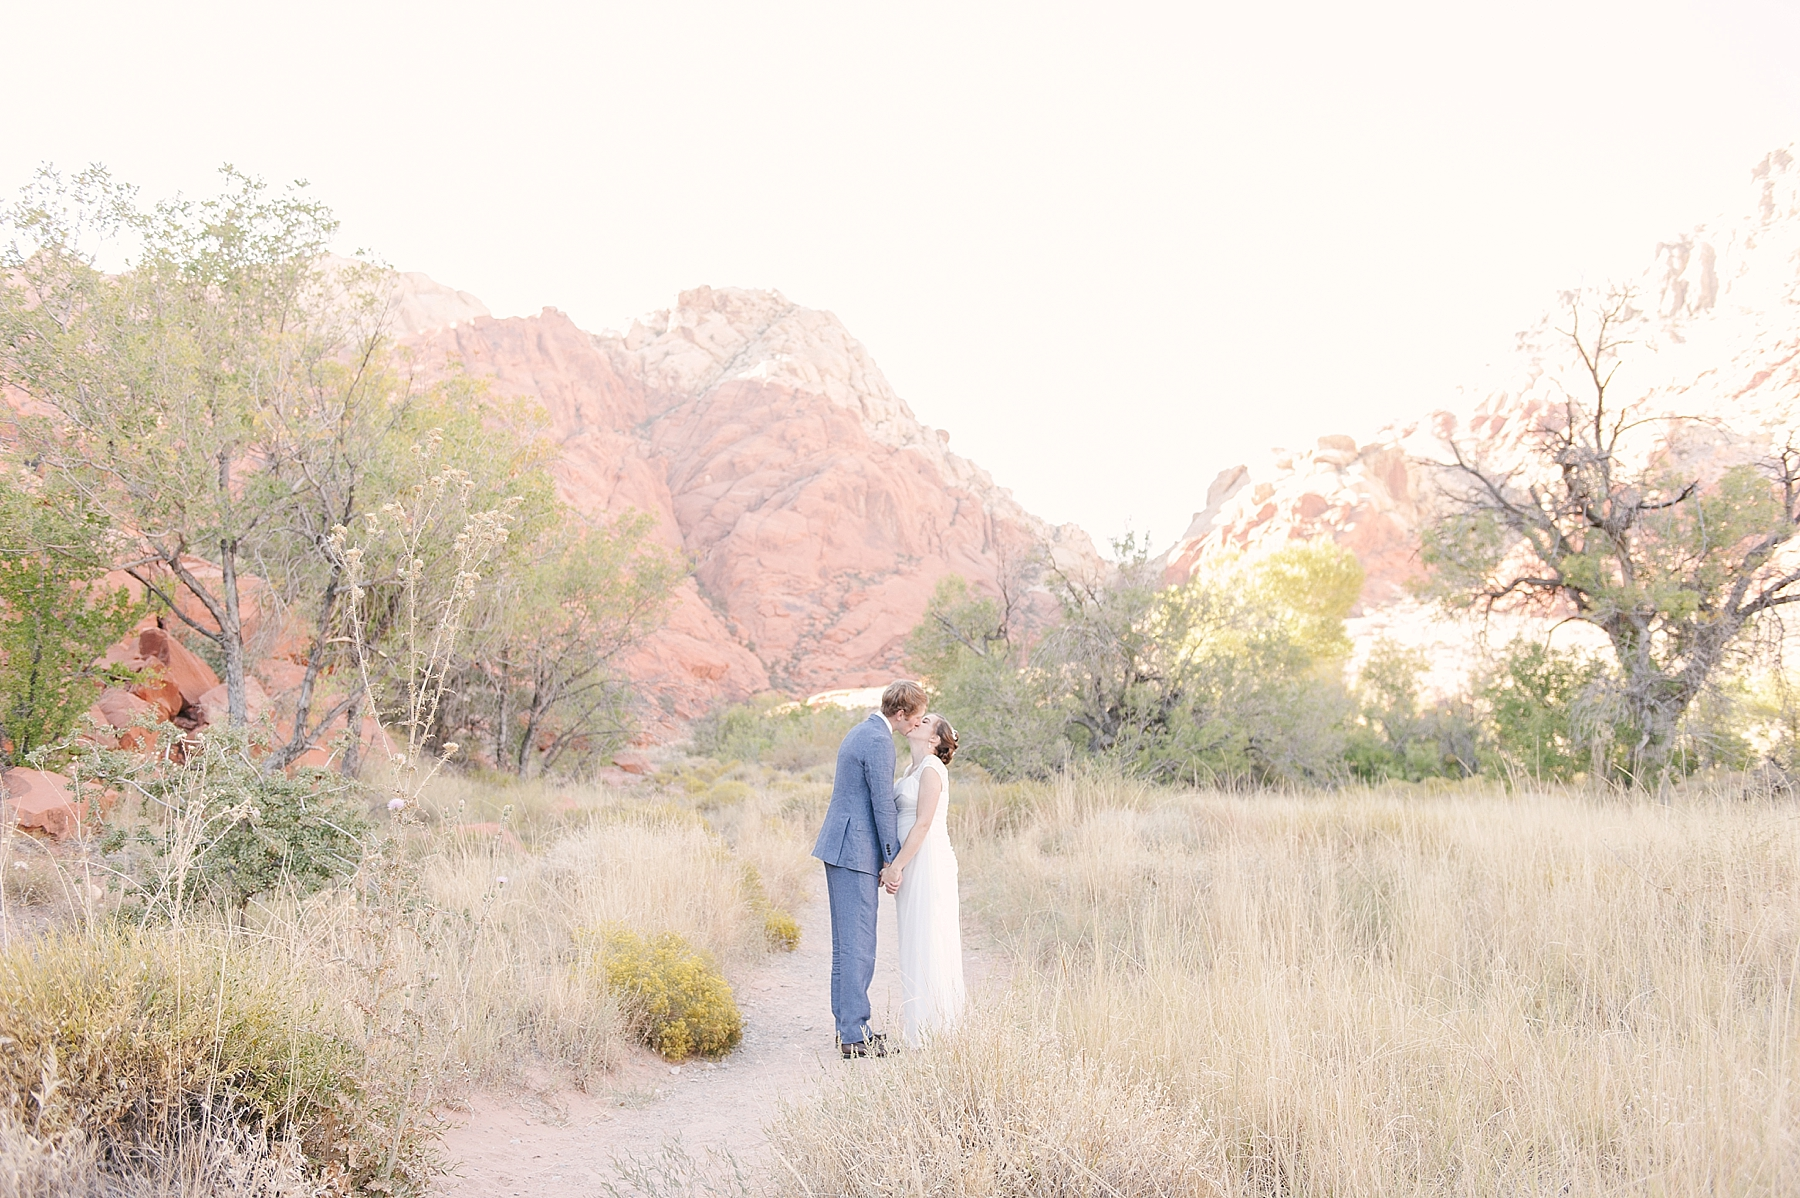 Red_Rock_Canyon_Wedding_las_vegas_Photos_blog-12.jpg